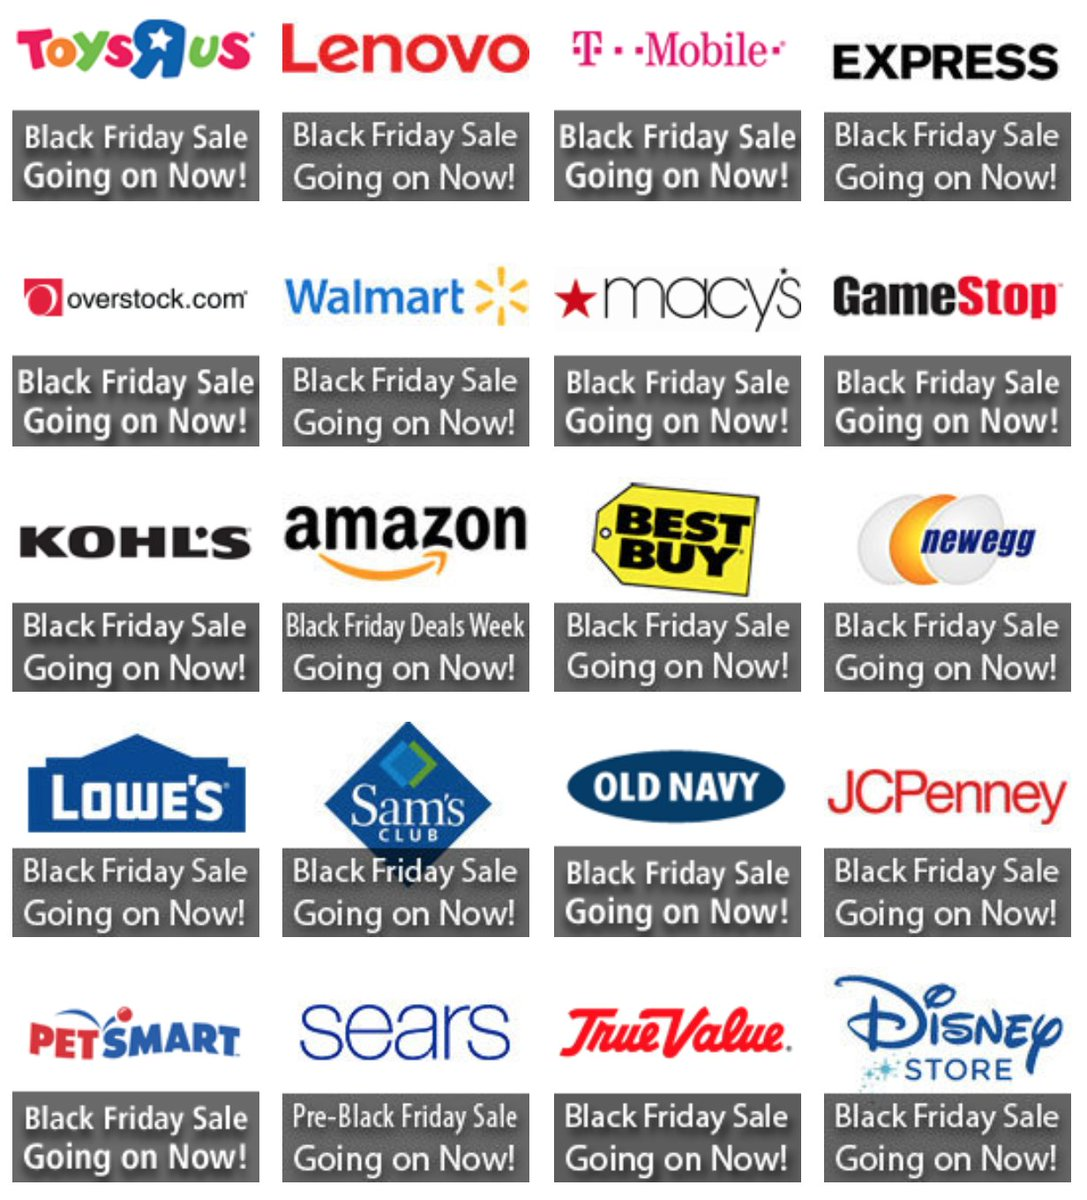 kohls vs jcpenney You may be included in the settlement if you purchased one or more items from kohl's while in california between june 11, 2011 and april 11.